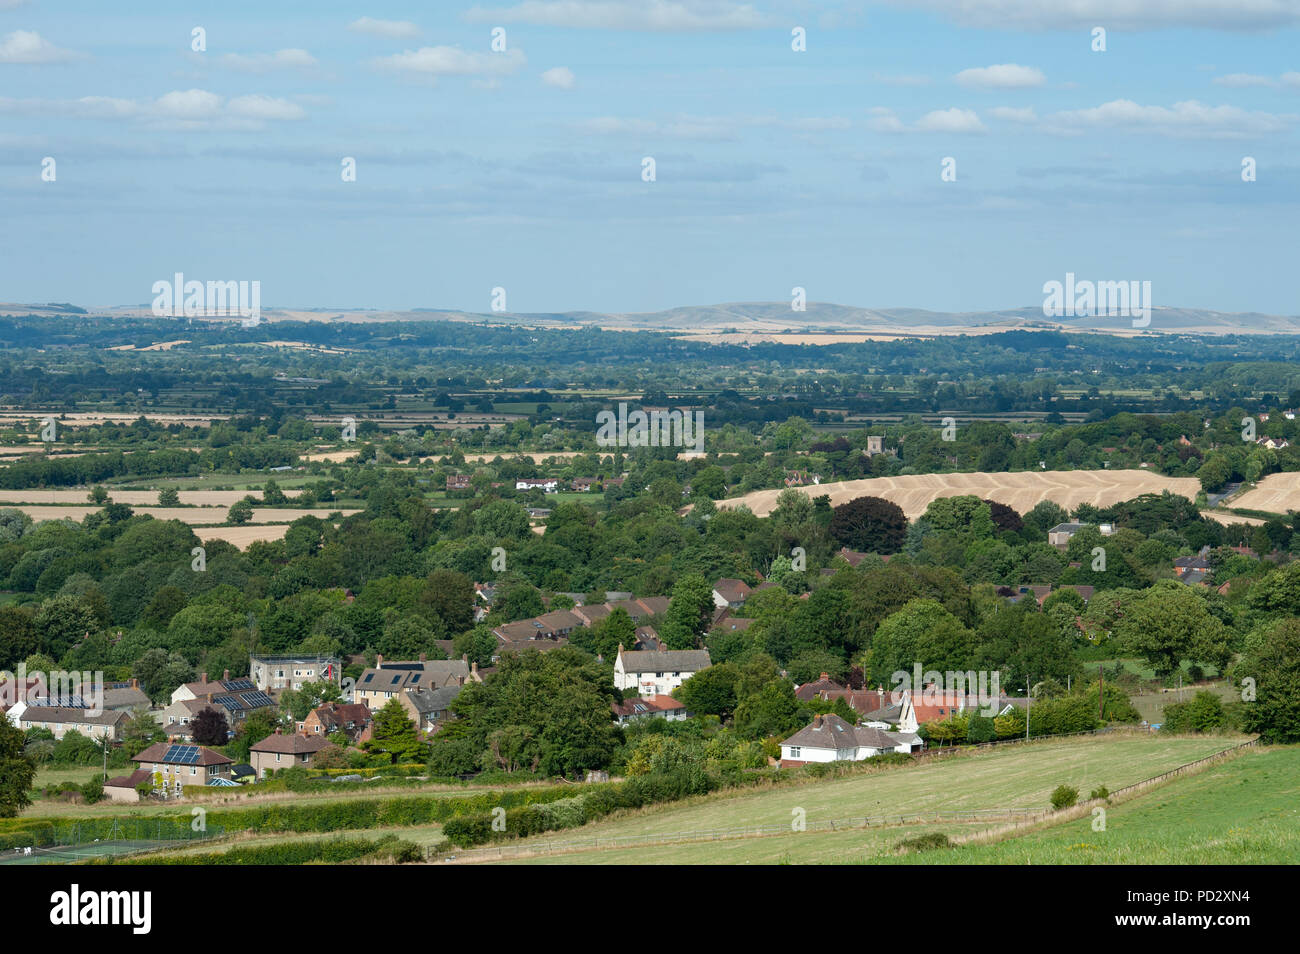 View from Bratton Camp, a Hill Fort, across the rooftops of Bratton, Wiltshire, UK looking North East towards Devizes. Stock Photo